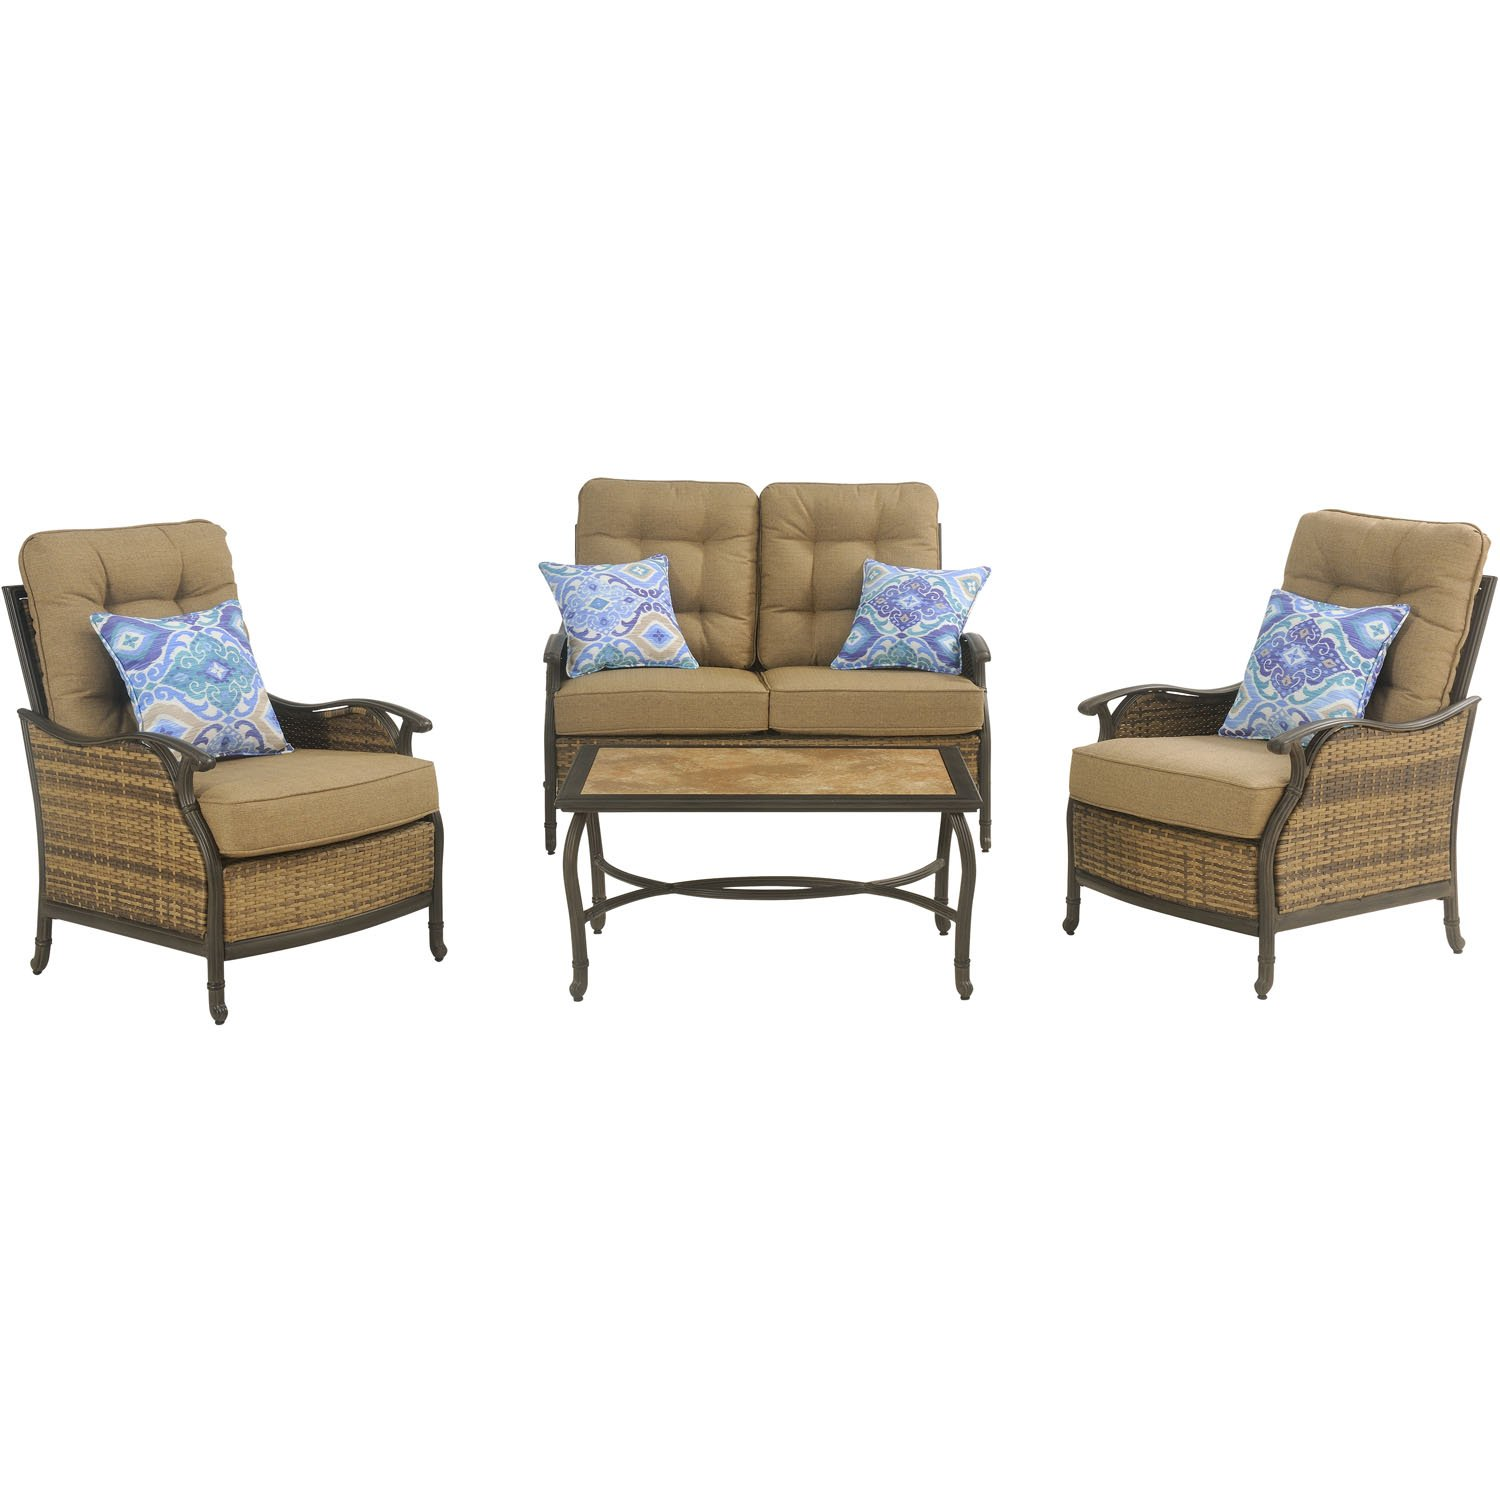 Amazon.com : Hanover Hudson Square 4 Piece Outdoor Deep Seating Lounge Set,  Multi : Garden U0026 Outdoor